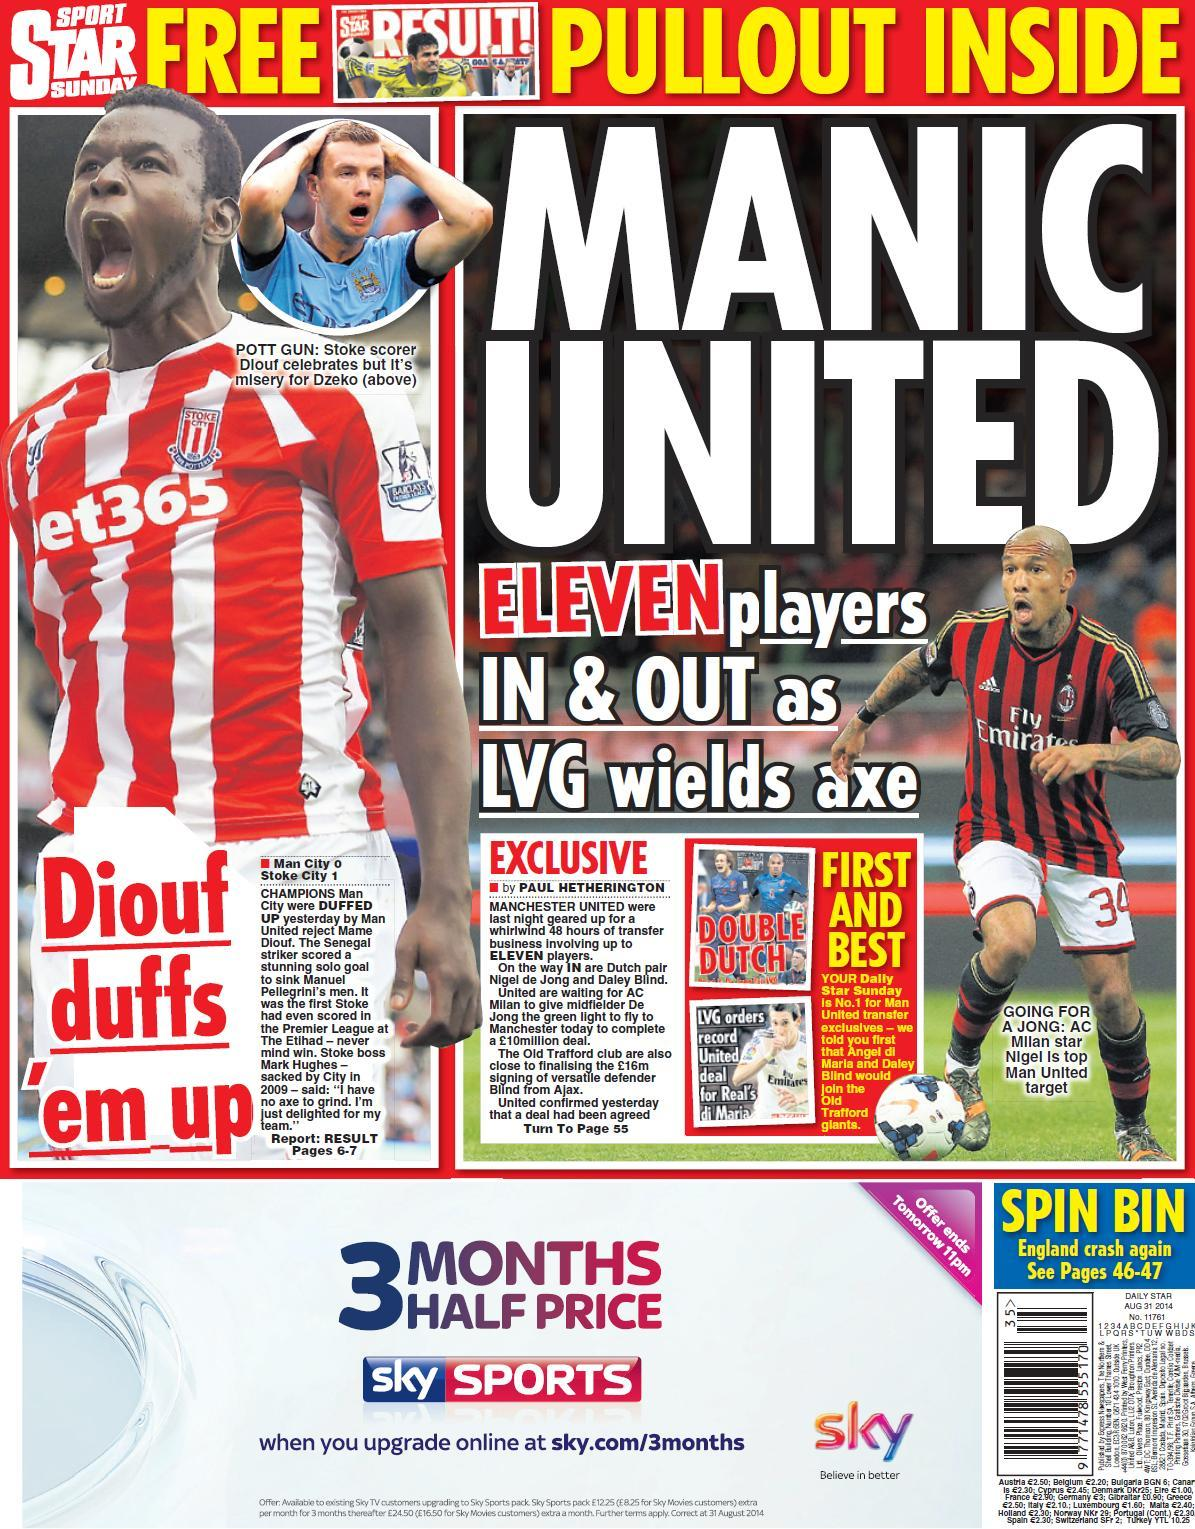 Man United to sign AC Milans Nigel de Jong for £10m, 9 players being axed [Sunday Star]